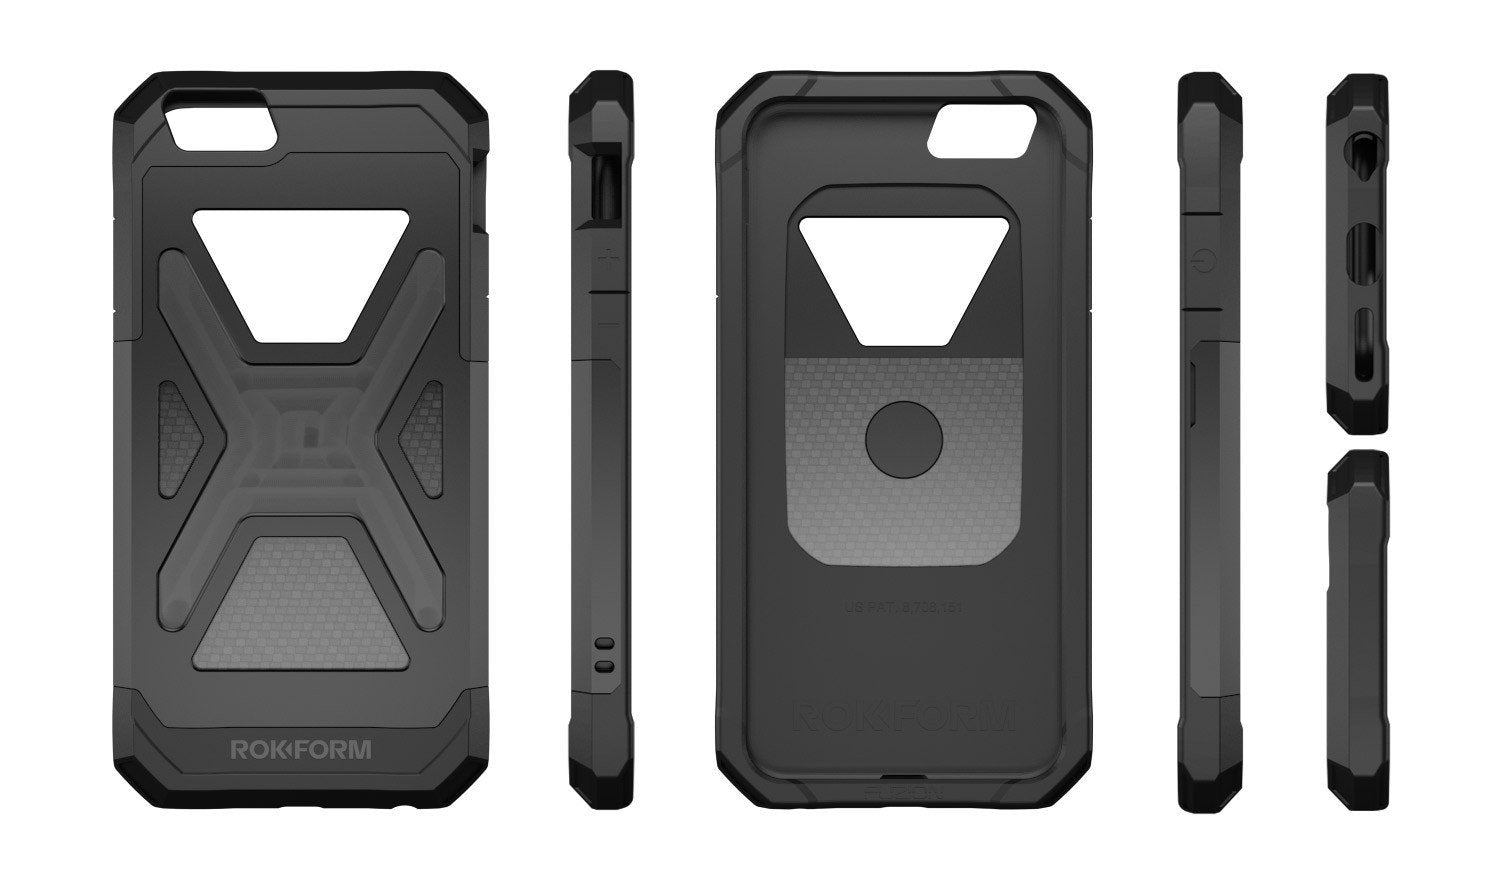 iPhone 6/6s Plus Fuzion Case - Rokform